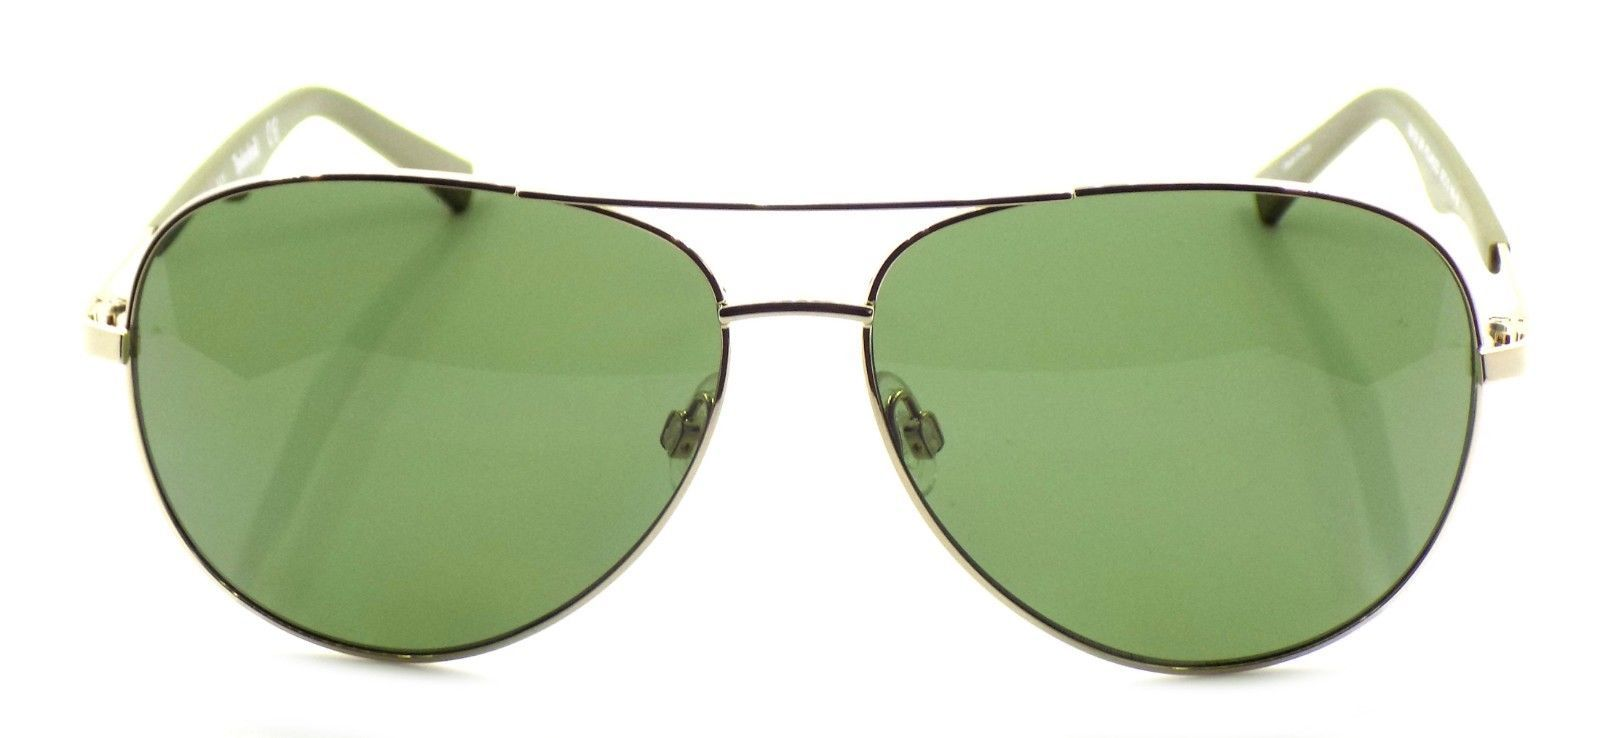 TIMBERLAND TB9109 30R Polarized Sunglasses GOLD 59-13-140 Green Lens + CASE